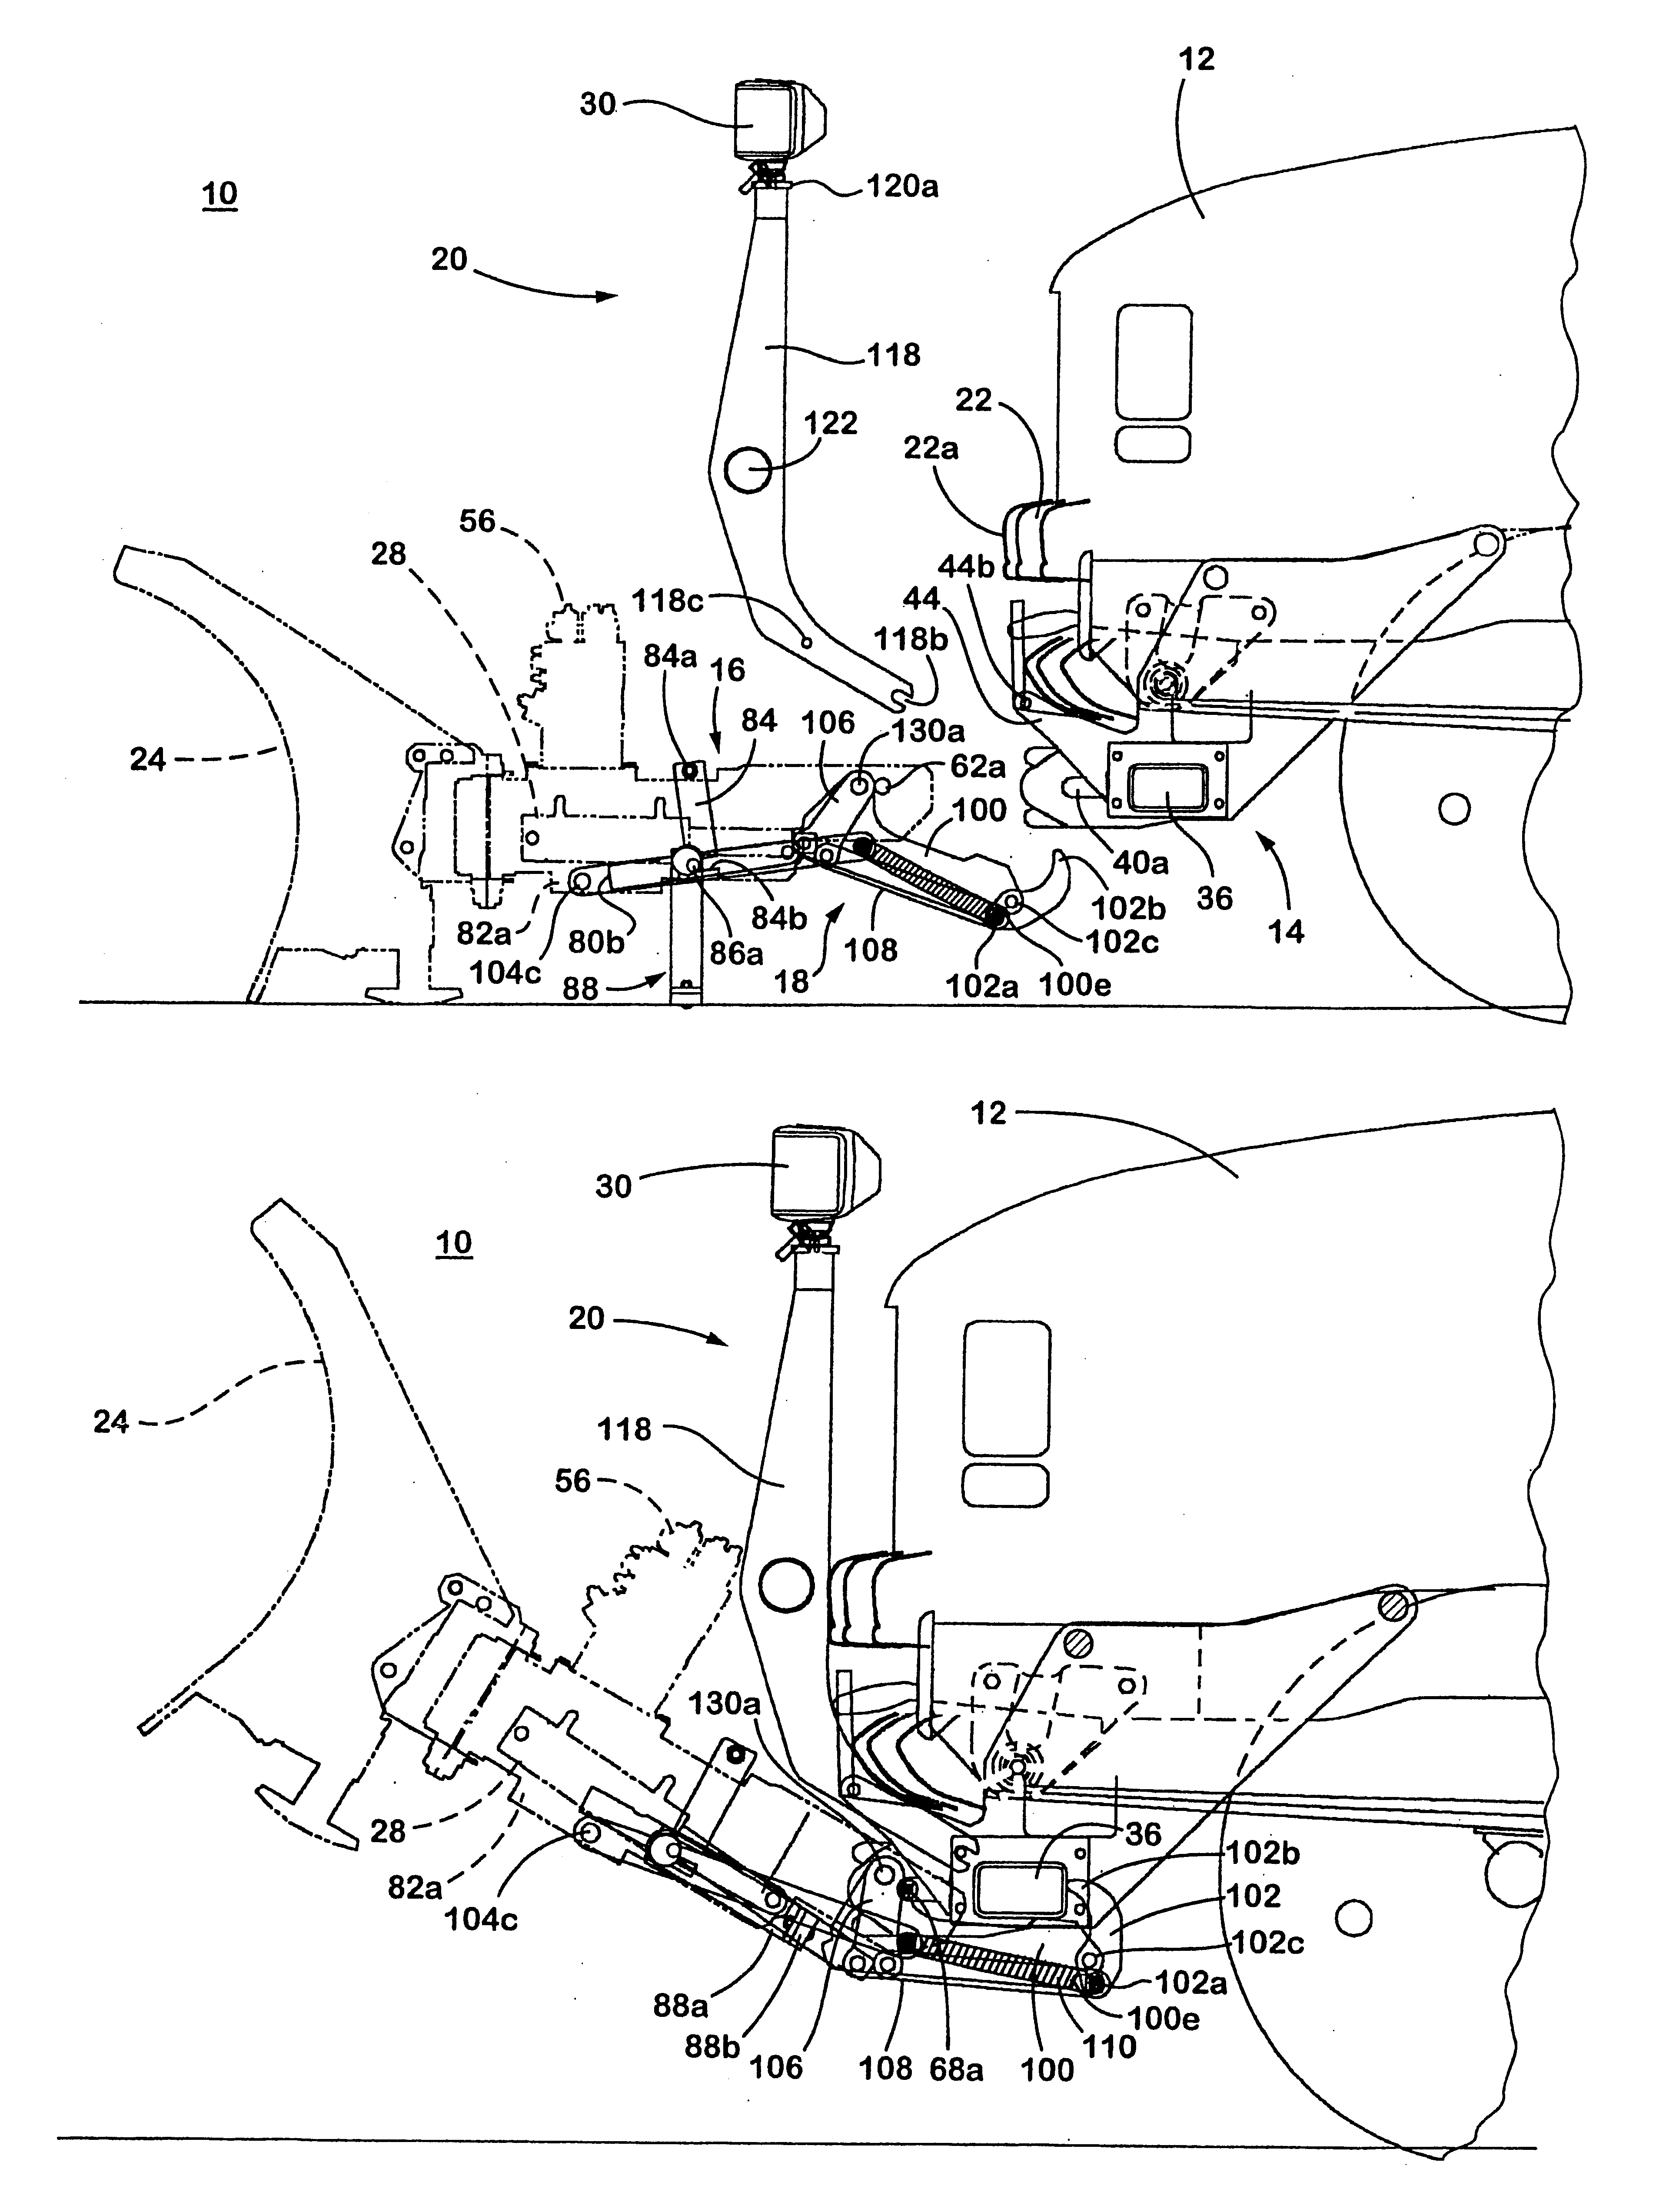 patent us6276076 plow hitch assembly for vehicles patents Blizzard 8100Pp Plow Wiring Diagram patent drawing